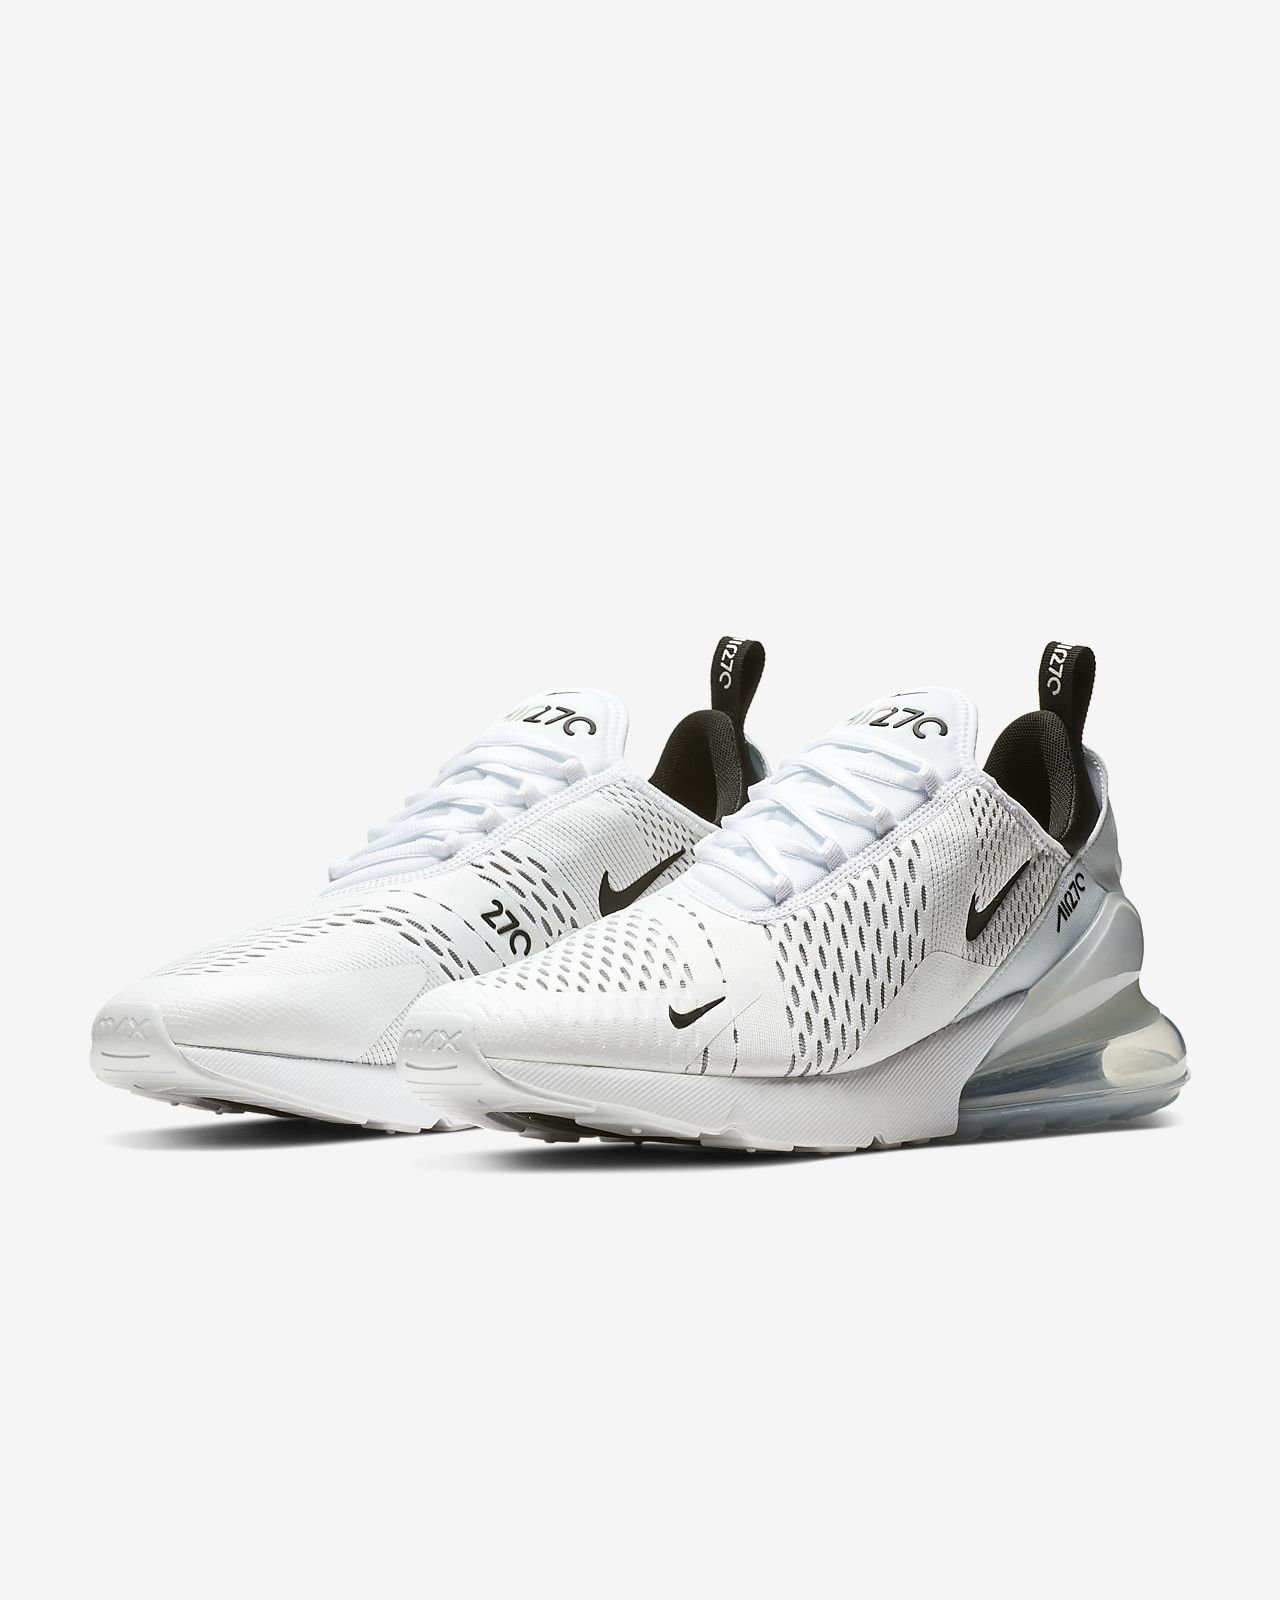 reputable site 641fe 40a7c ... Nike Air Max 270 Mens Shoe